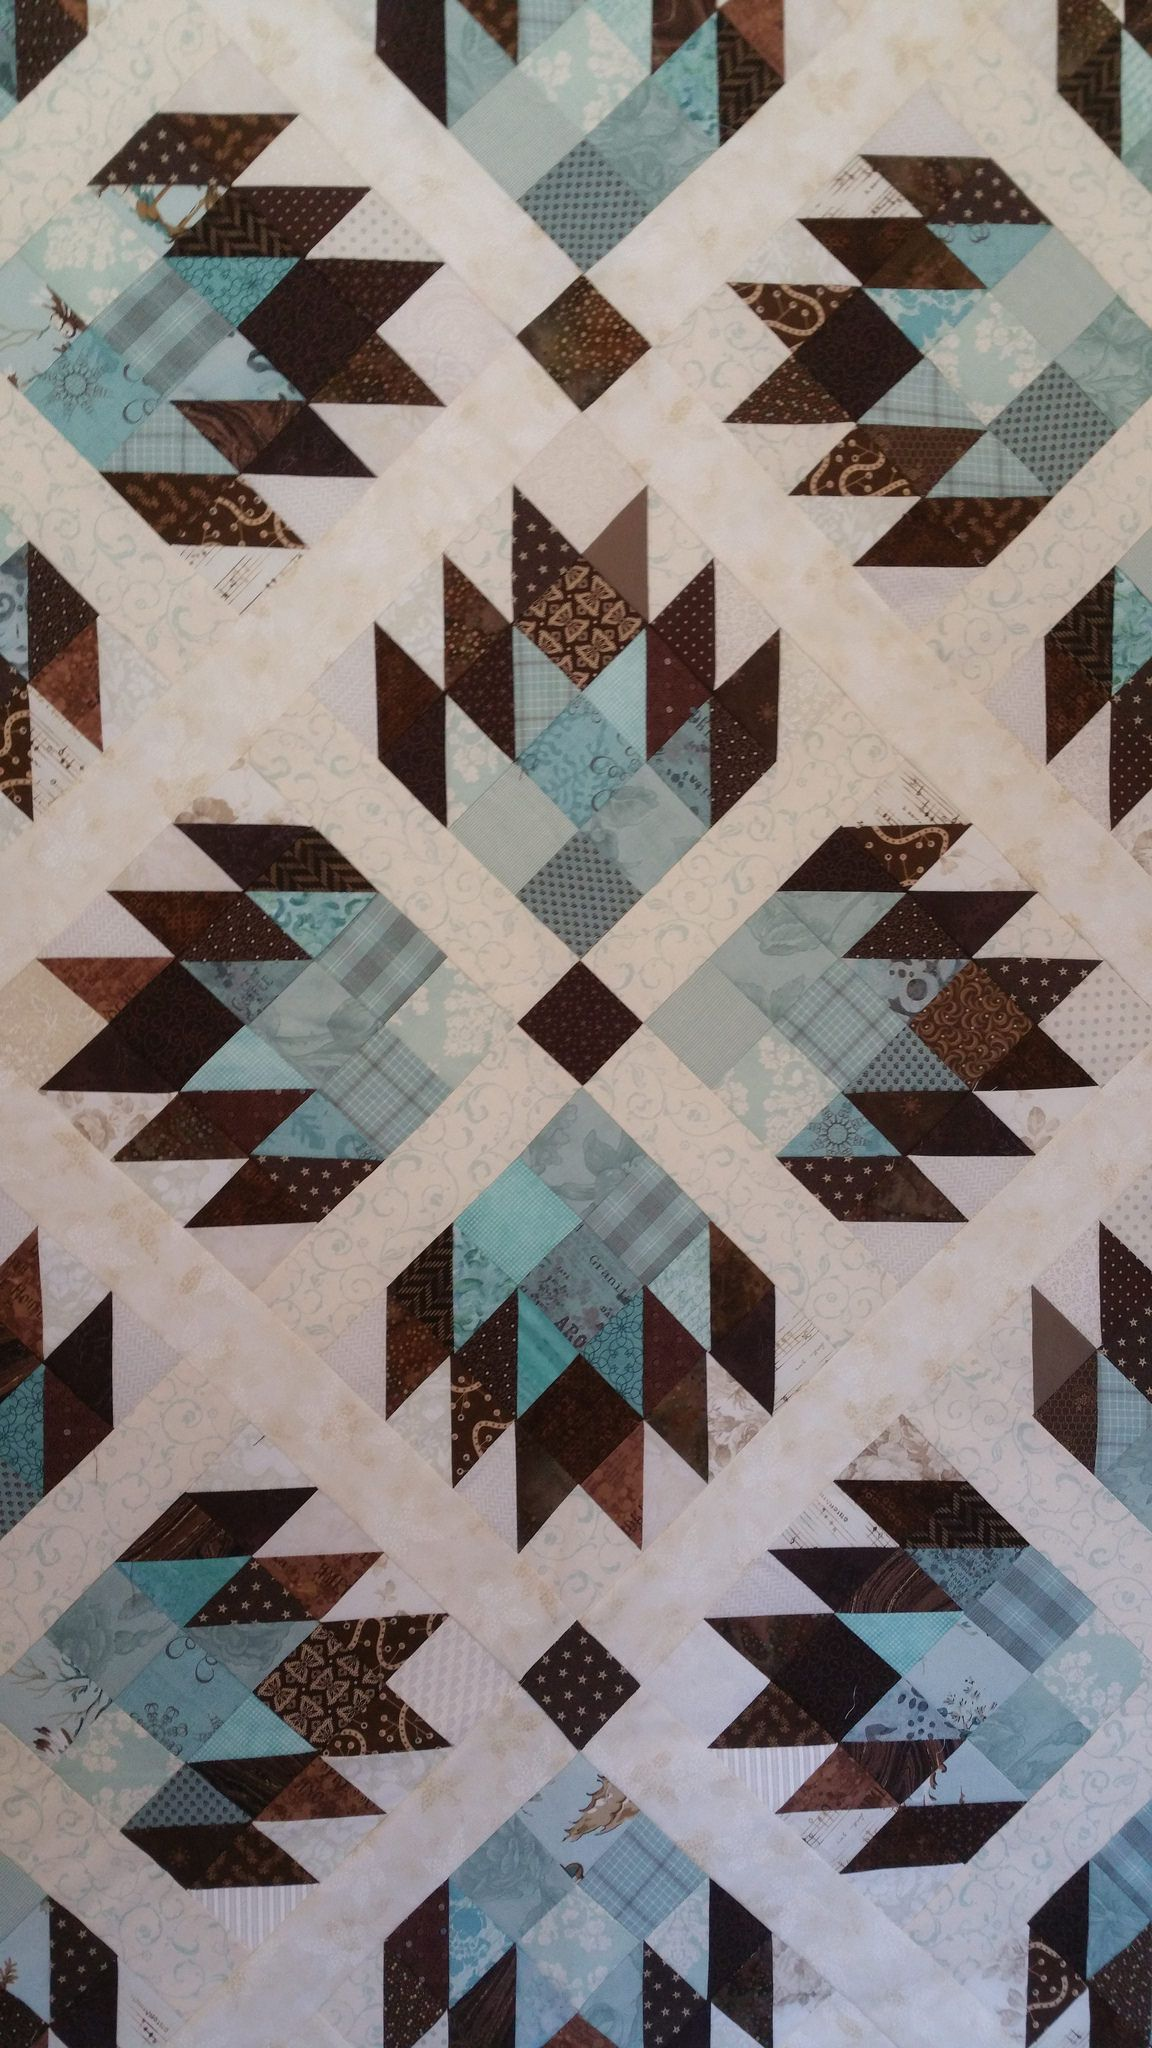 New Pattern By Materialgitlfriendsdouble Bear Paw Three Sizes 60 Square 90 Queen And 120 King Size By Material Gi Bear Paw Quilt Quilts Quilt Patterns